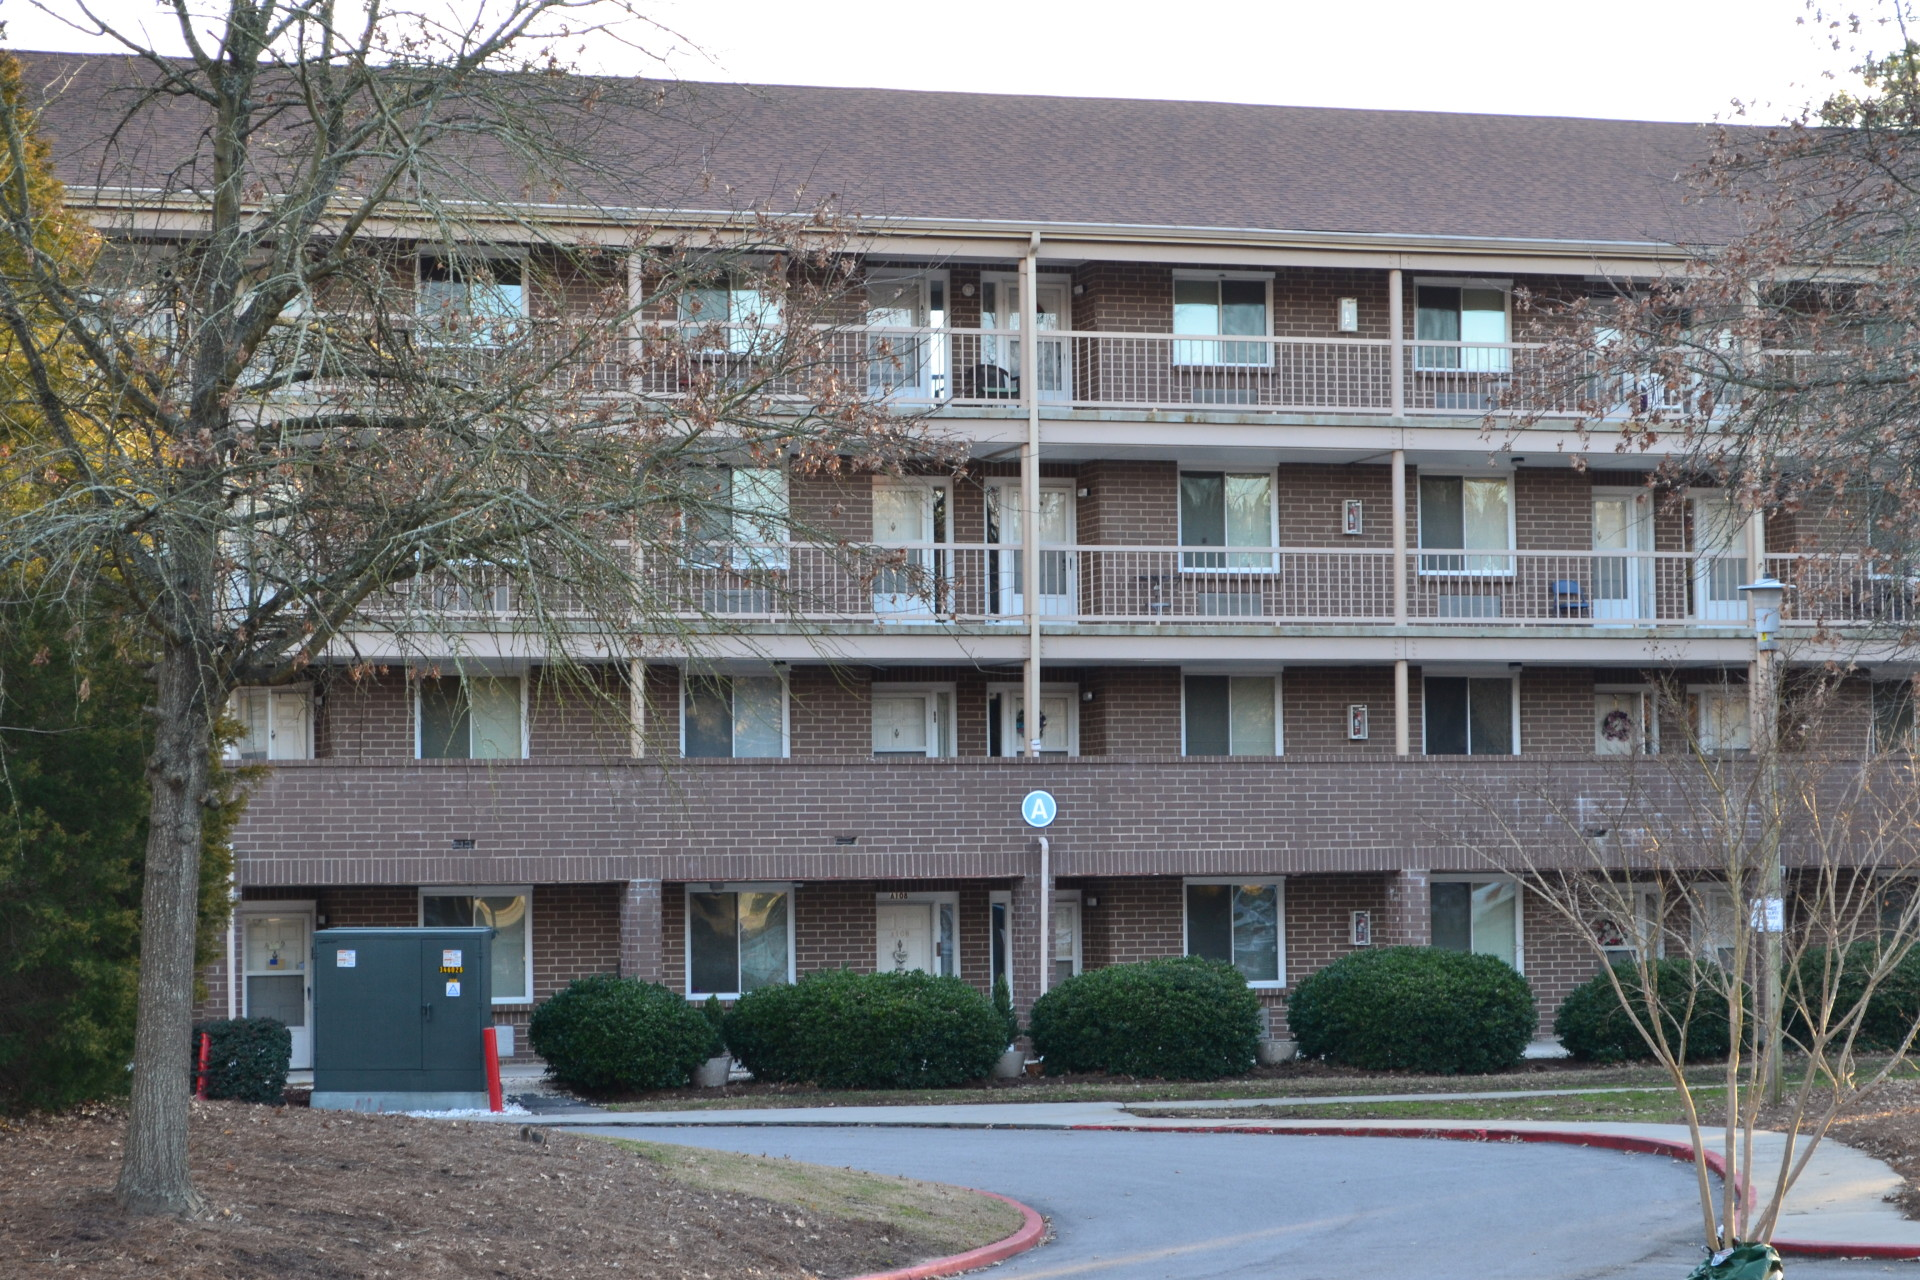 Lakeside Apartments Greenville Nc Website Lakeside Apartments Nhe. lakeside apartments greenville nc website   28 images   940 forest